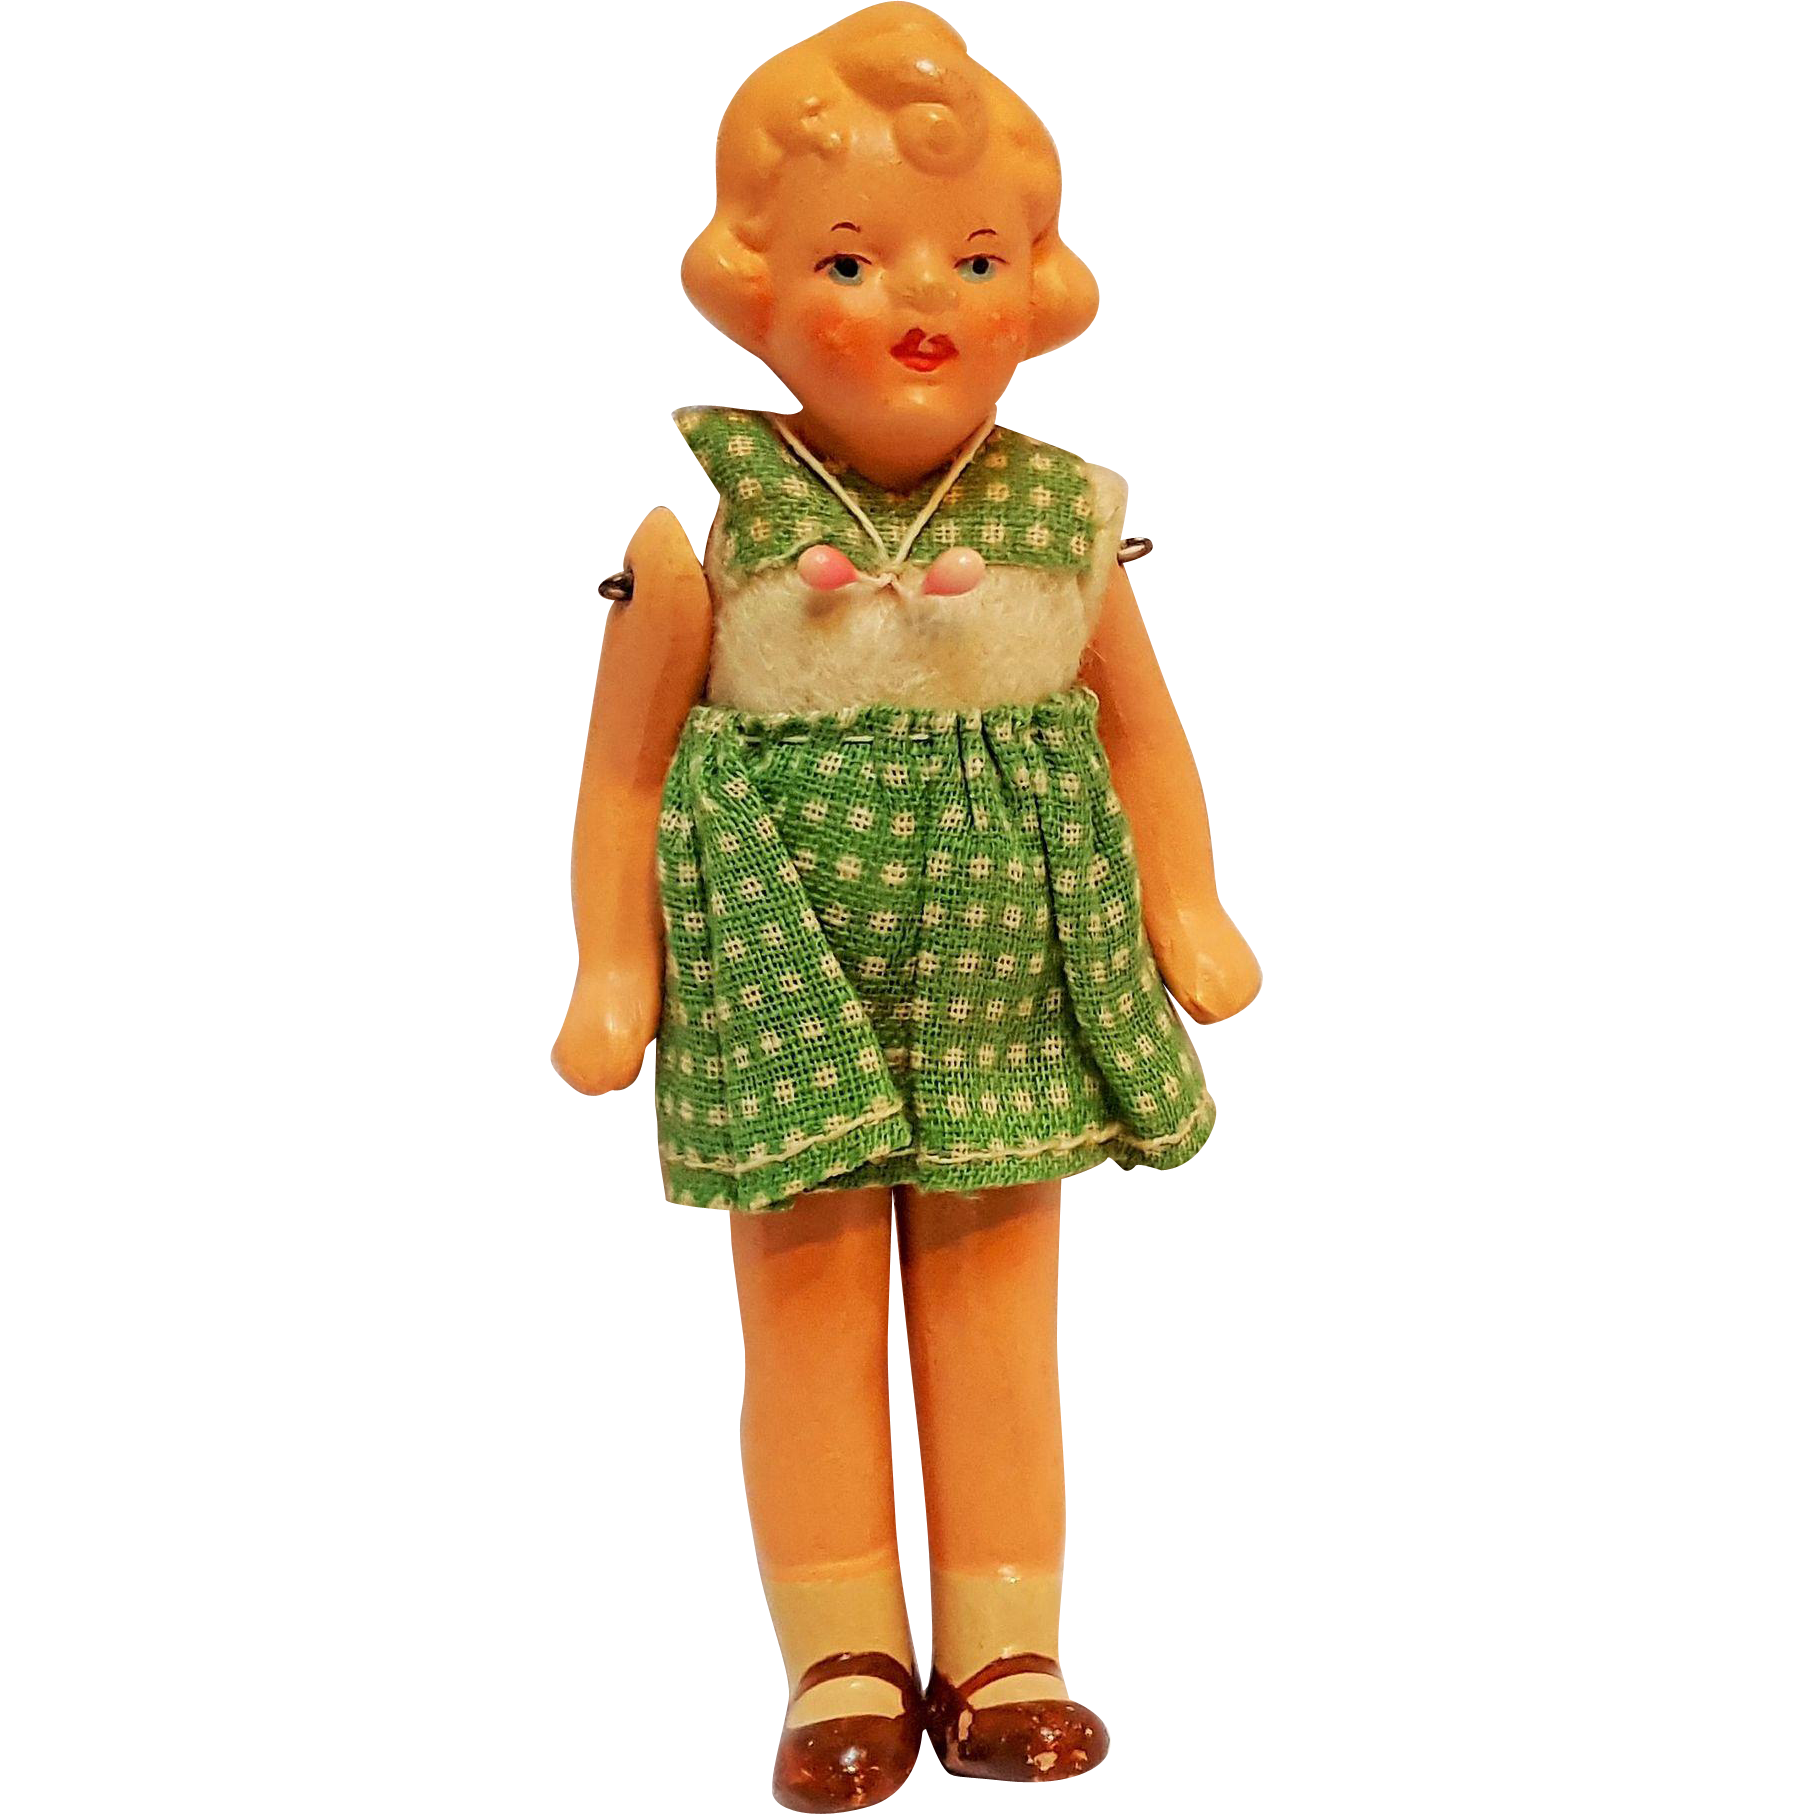 Miniature bisque dollhouse girl doll Germany 425